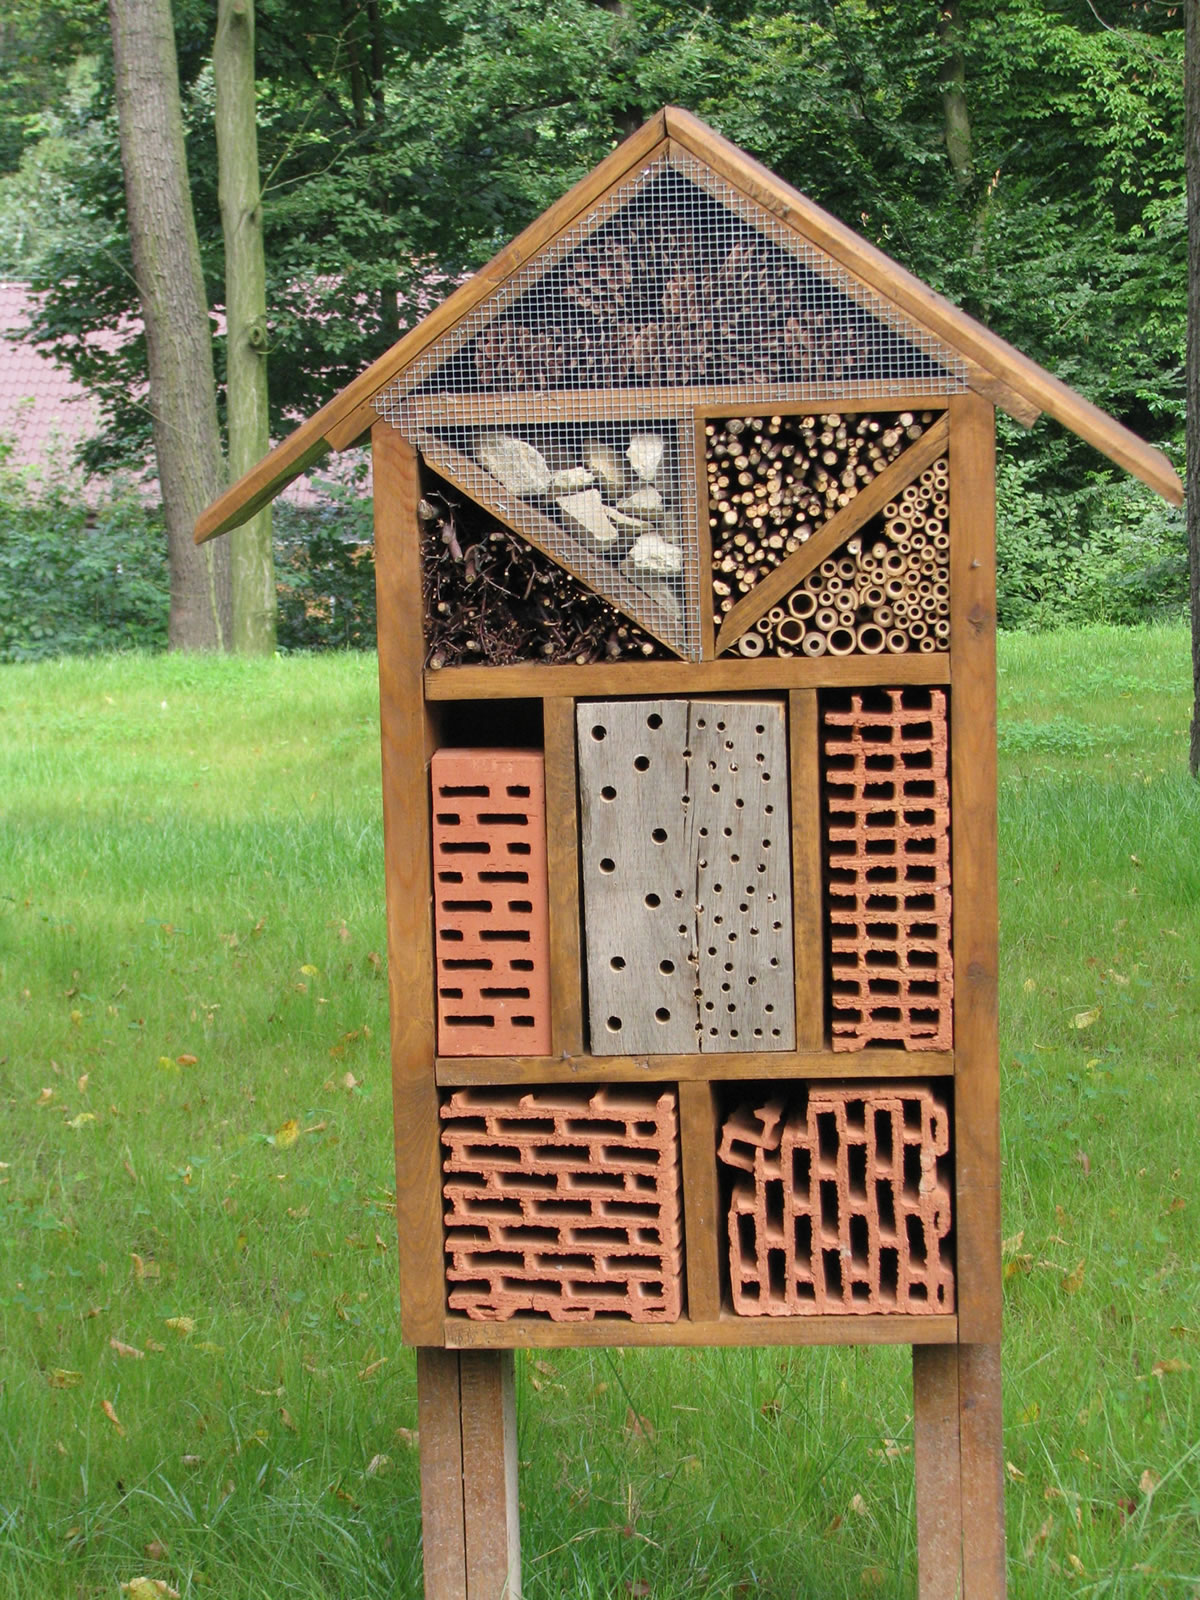 insect-house-1085197